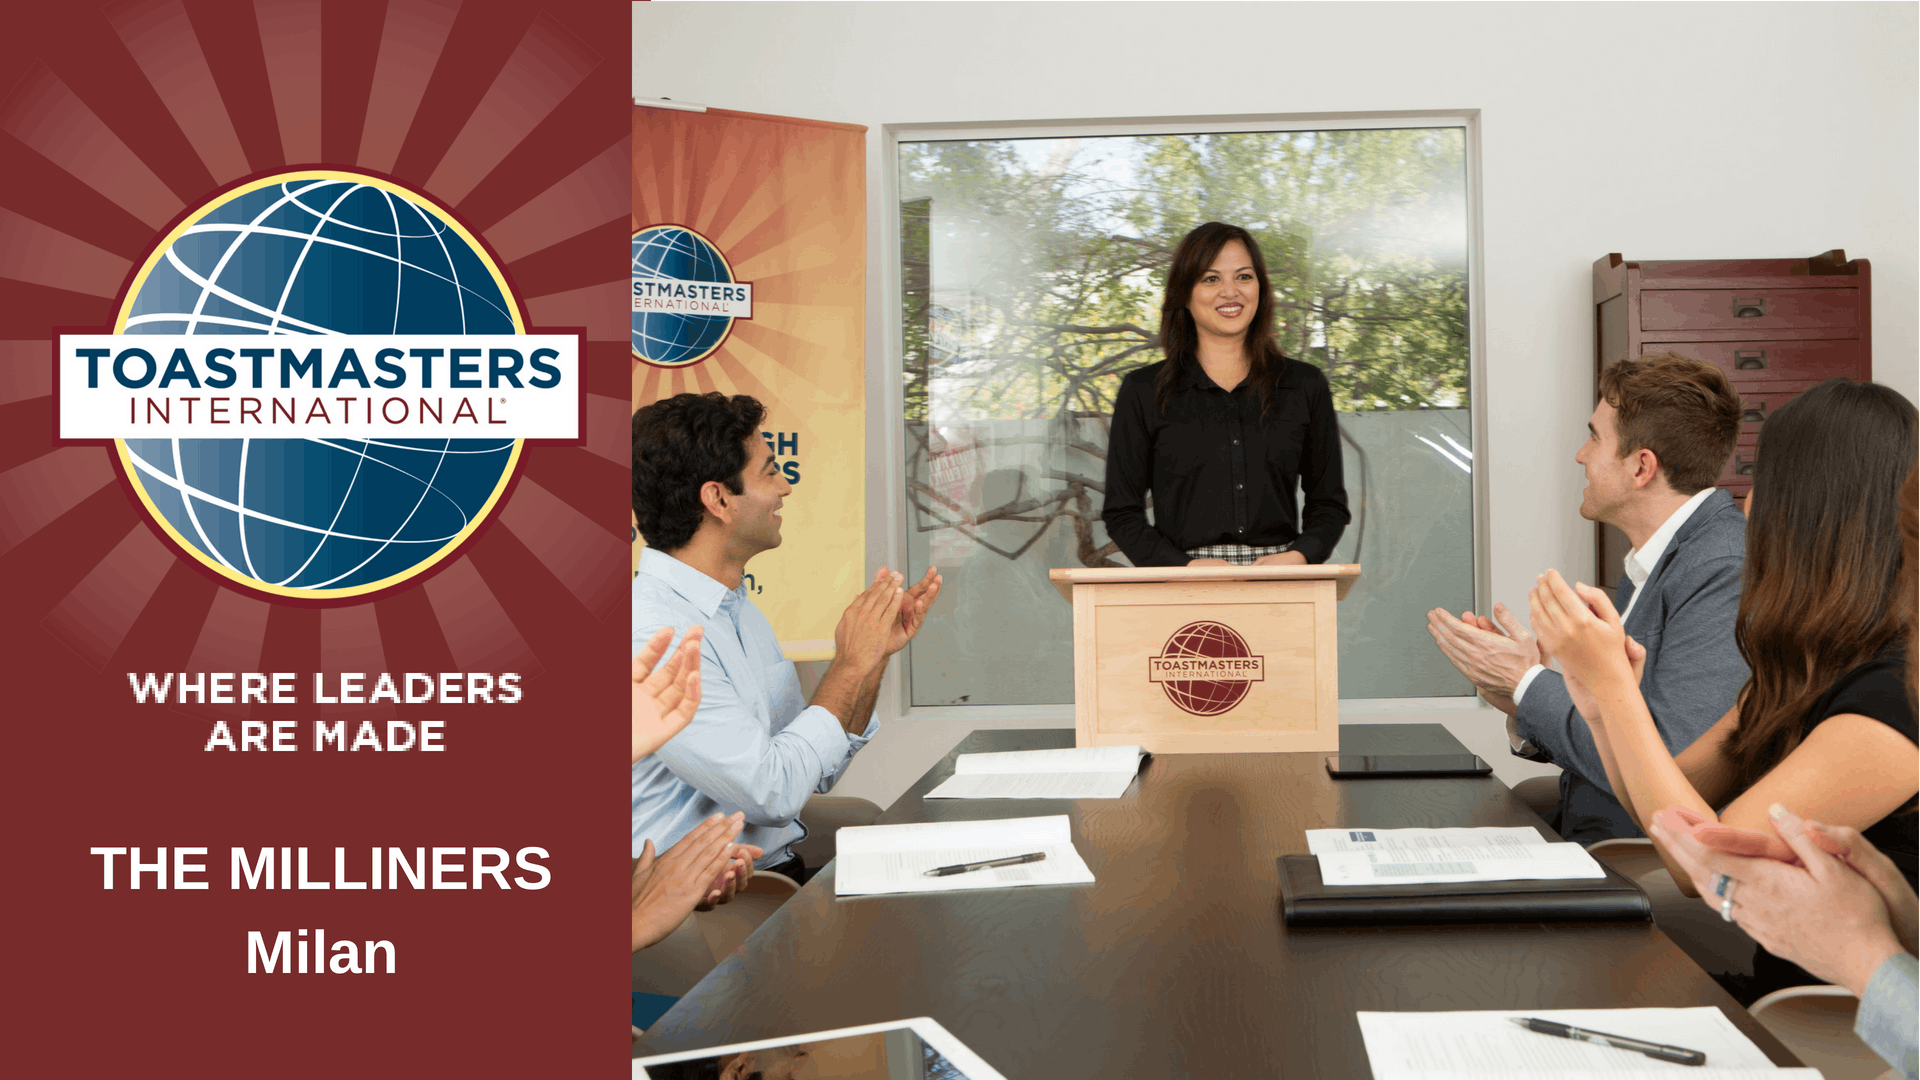 English Public Speaking with The Milliners Toastmasters